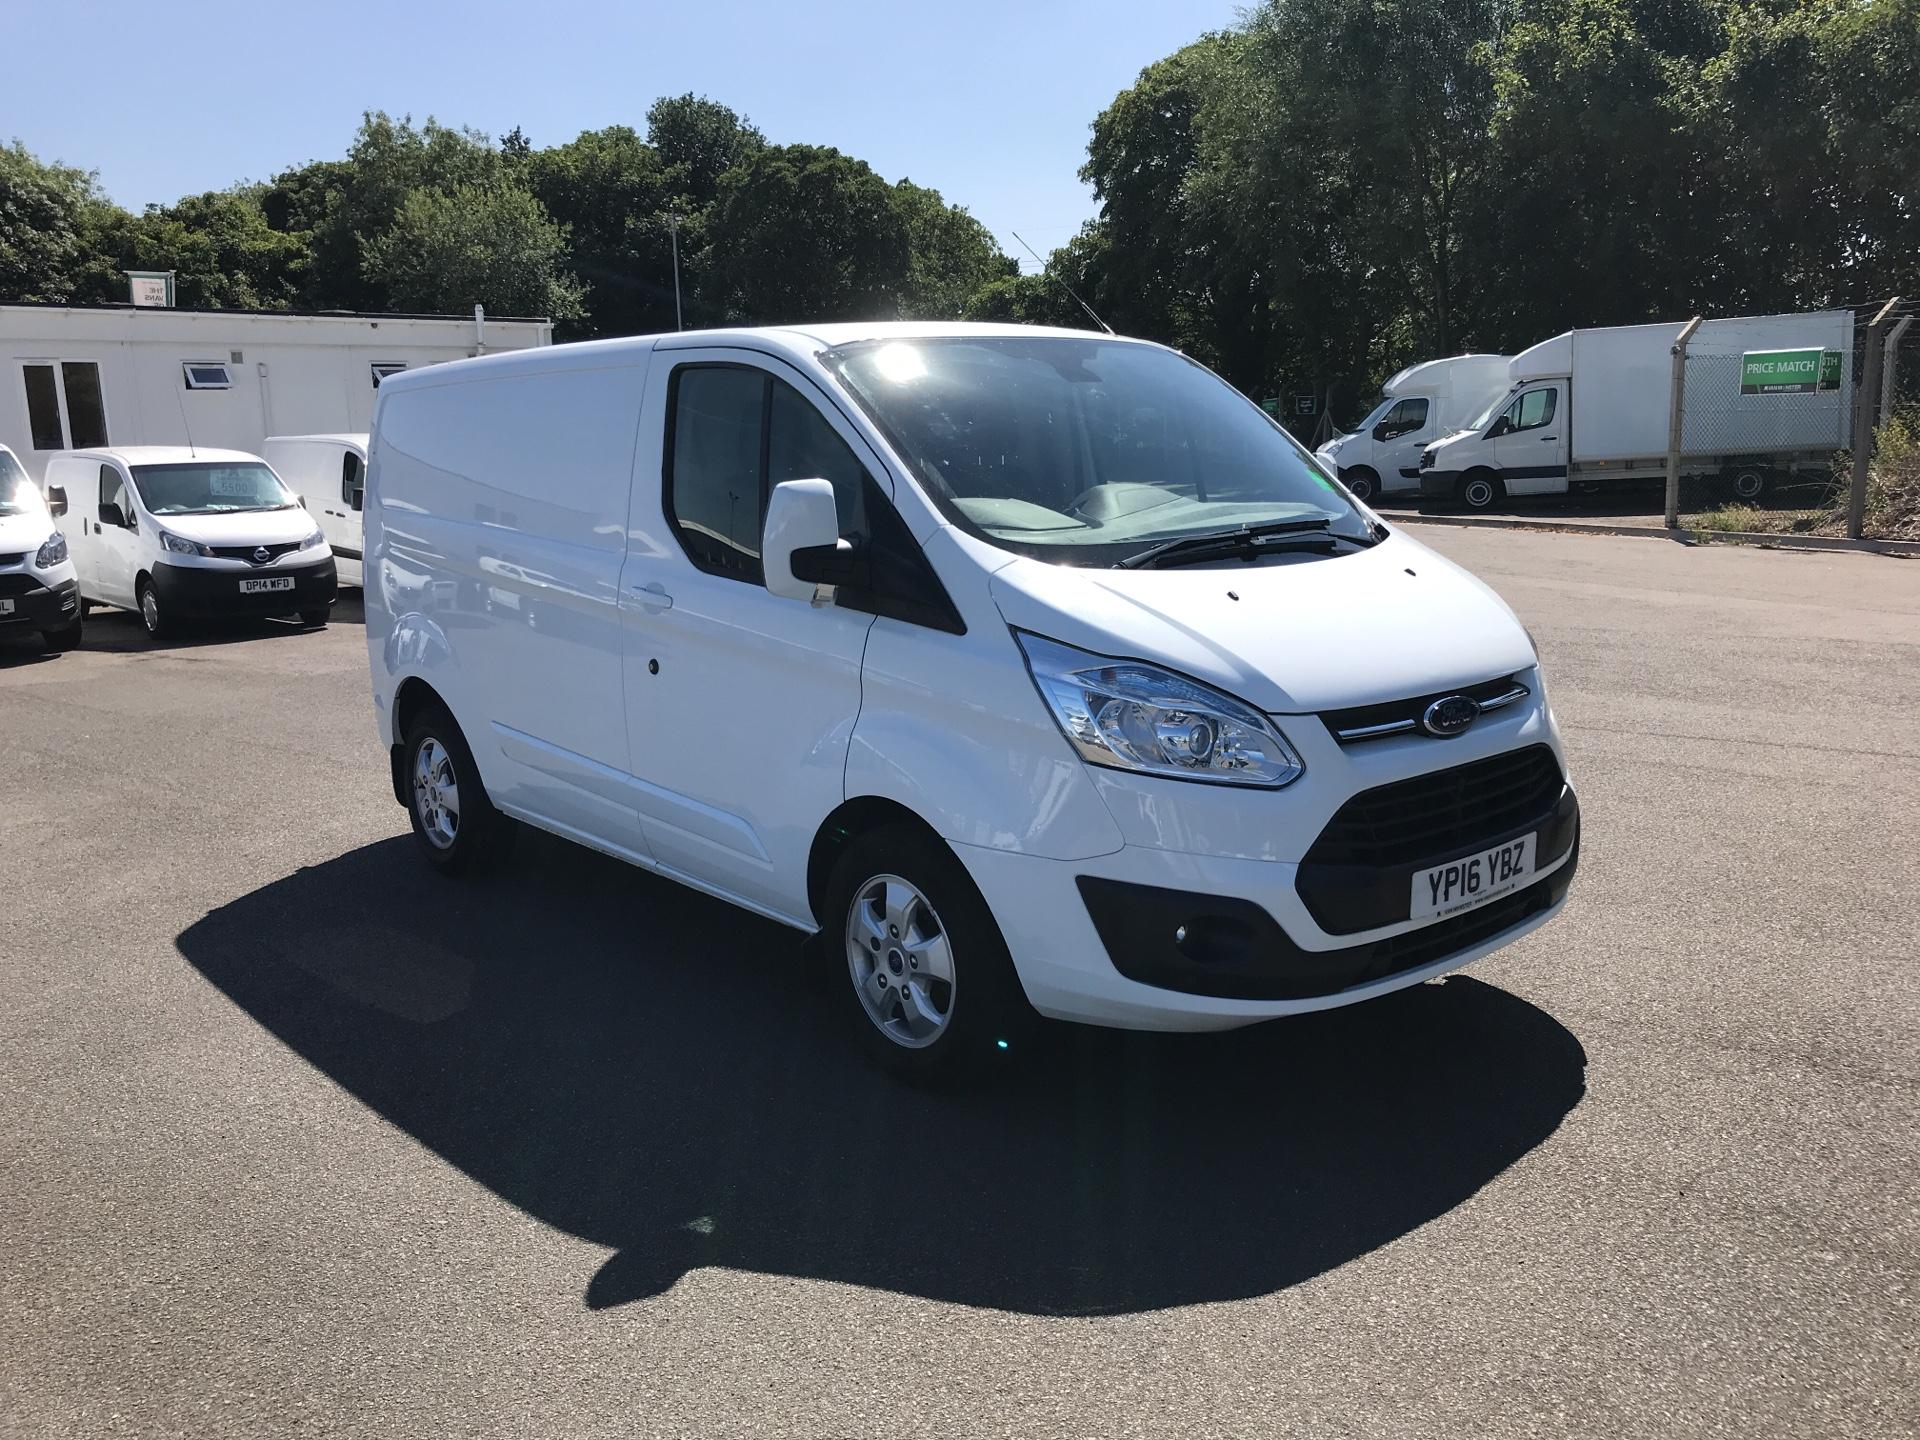 2016 Ford Transit Custom 2.2 TDCI 125PS LOW ROOF LIMITED VAN  (YP16YBZ)